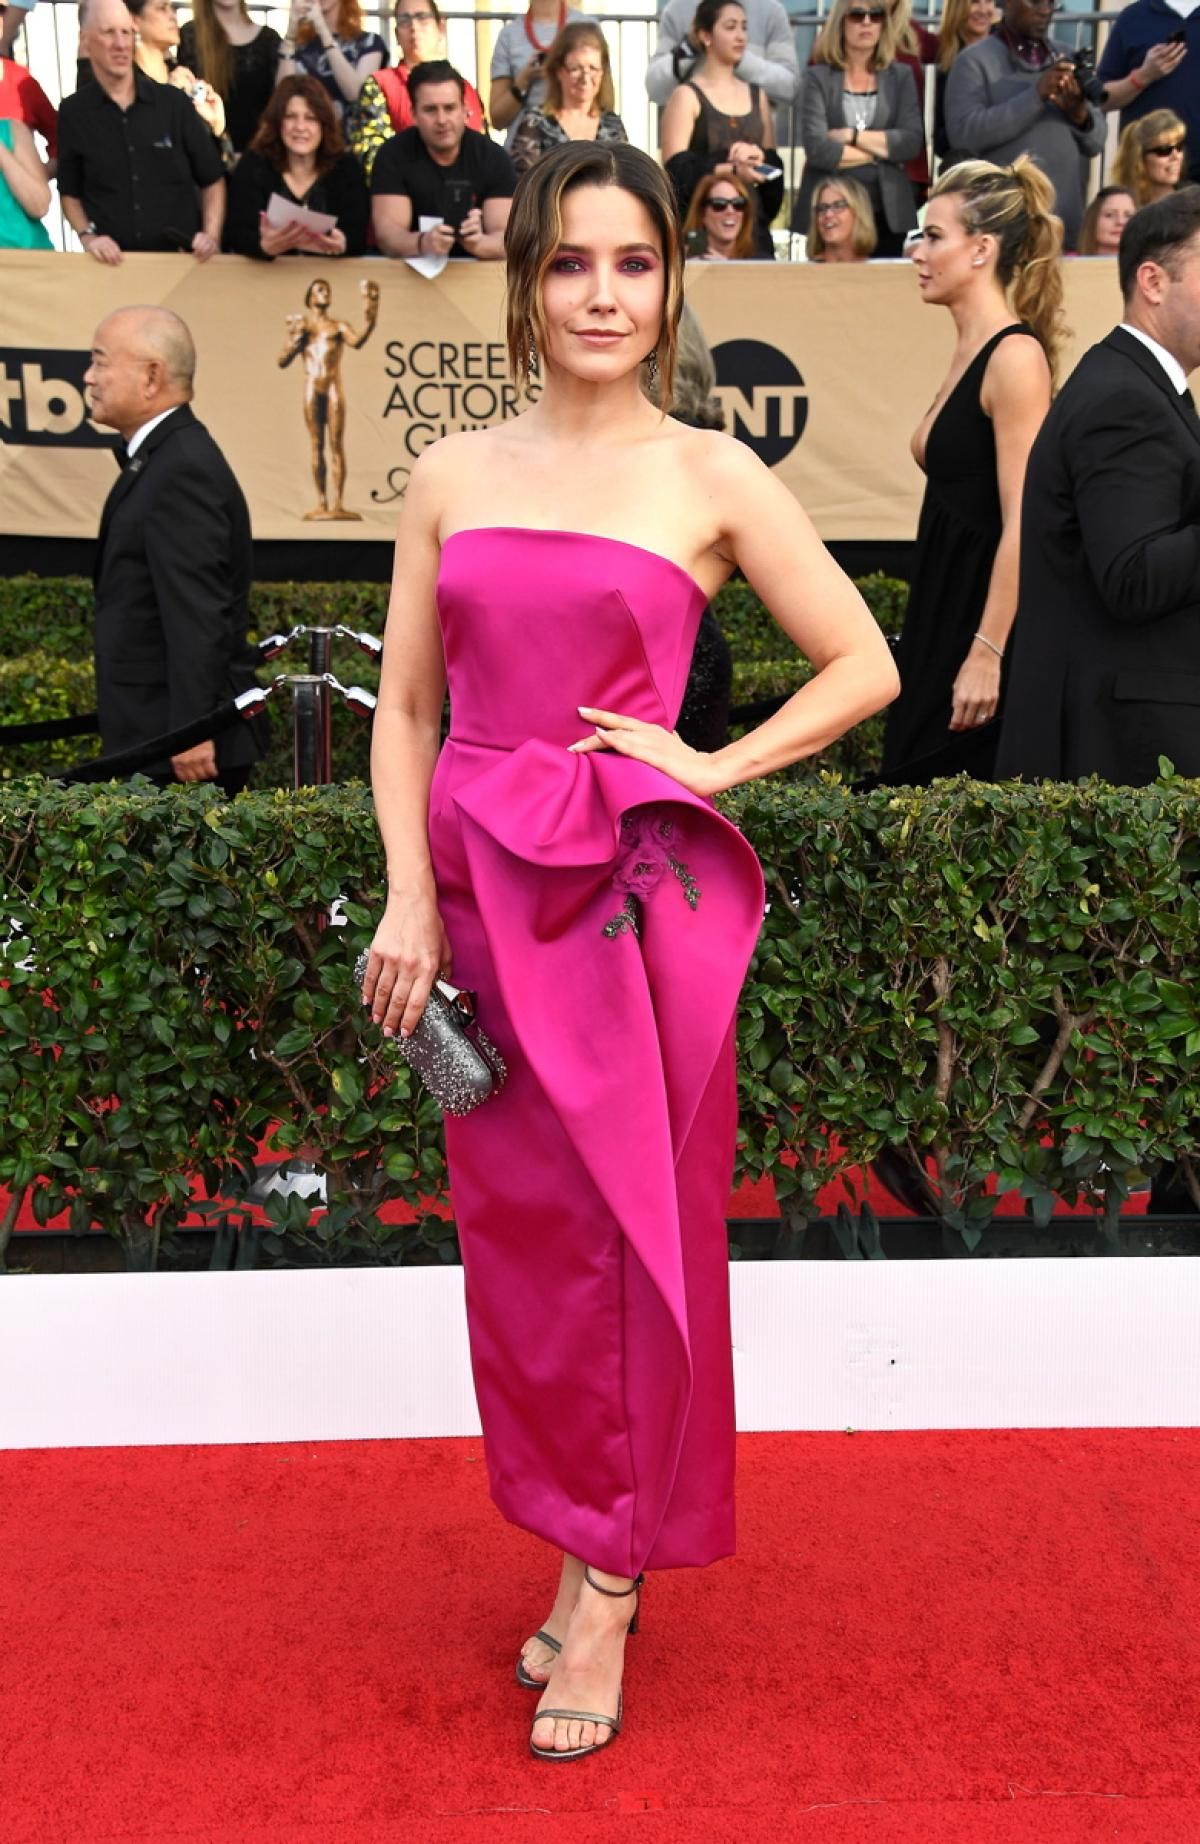 Actress Sophia Bush looked exquisite in a hot pink Marchesa dress with hot pink eyeshadow to match her look during the annual award show in Los Angles.